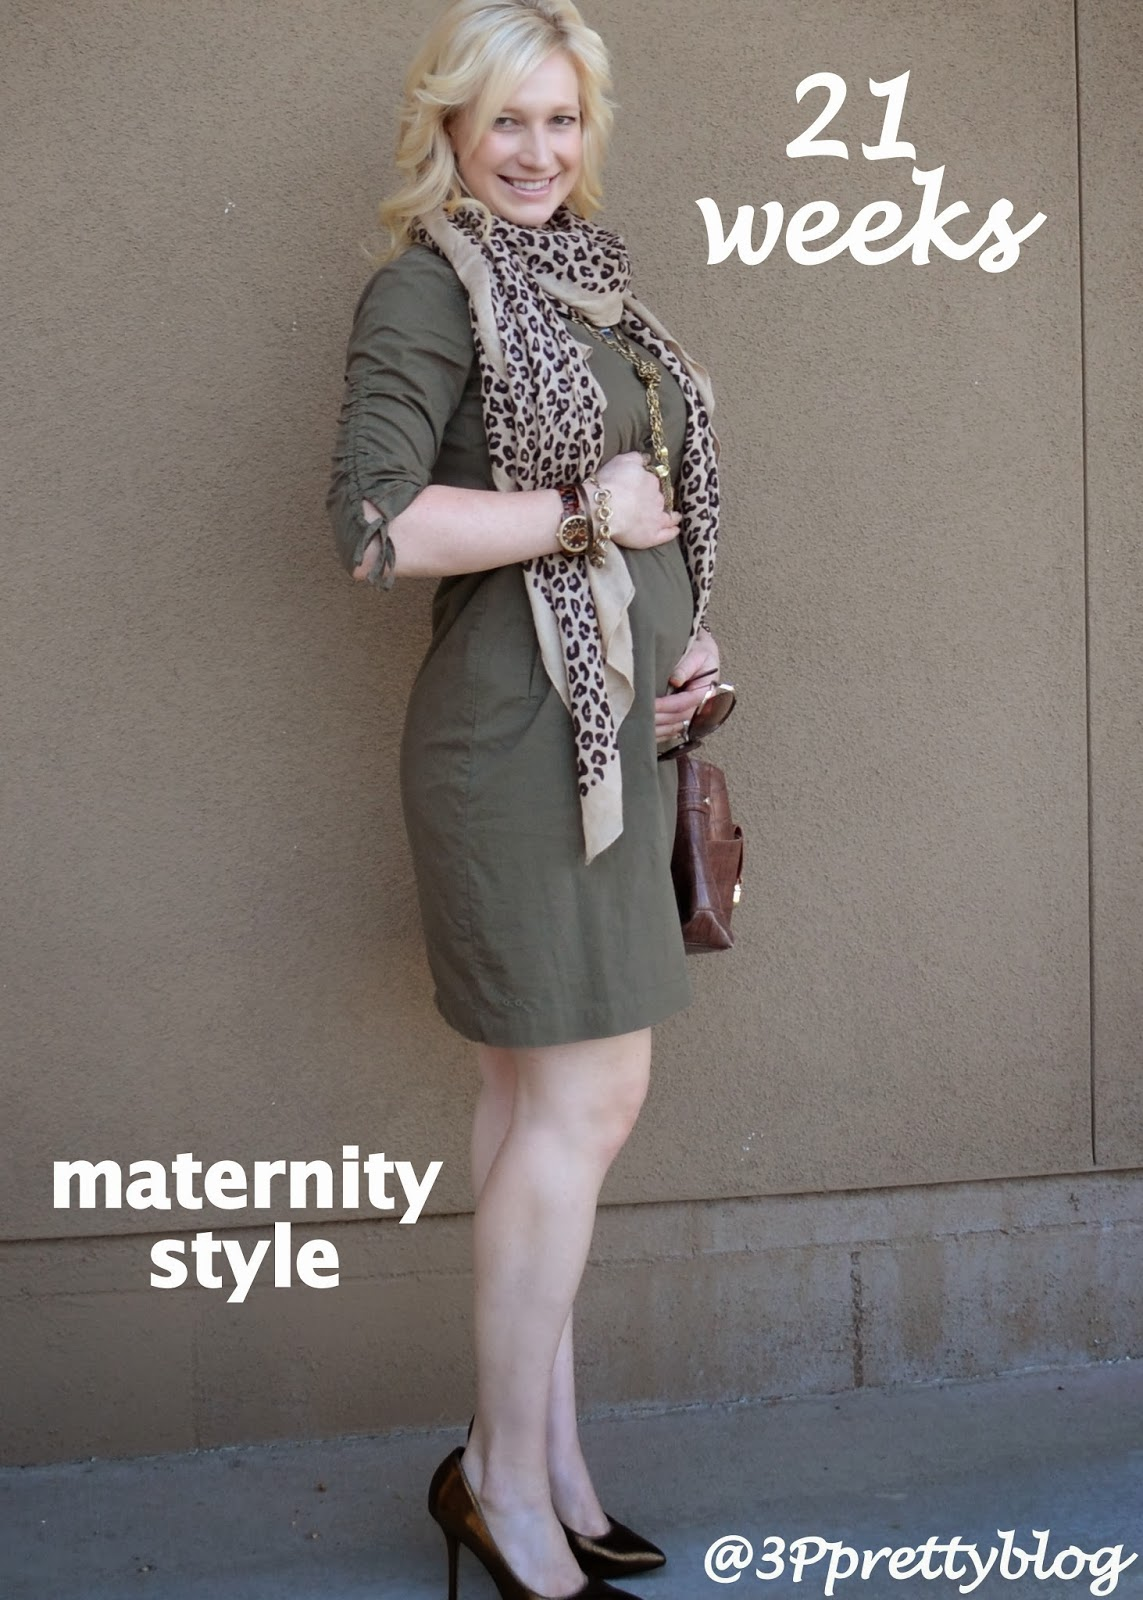 Baby B maternity style